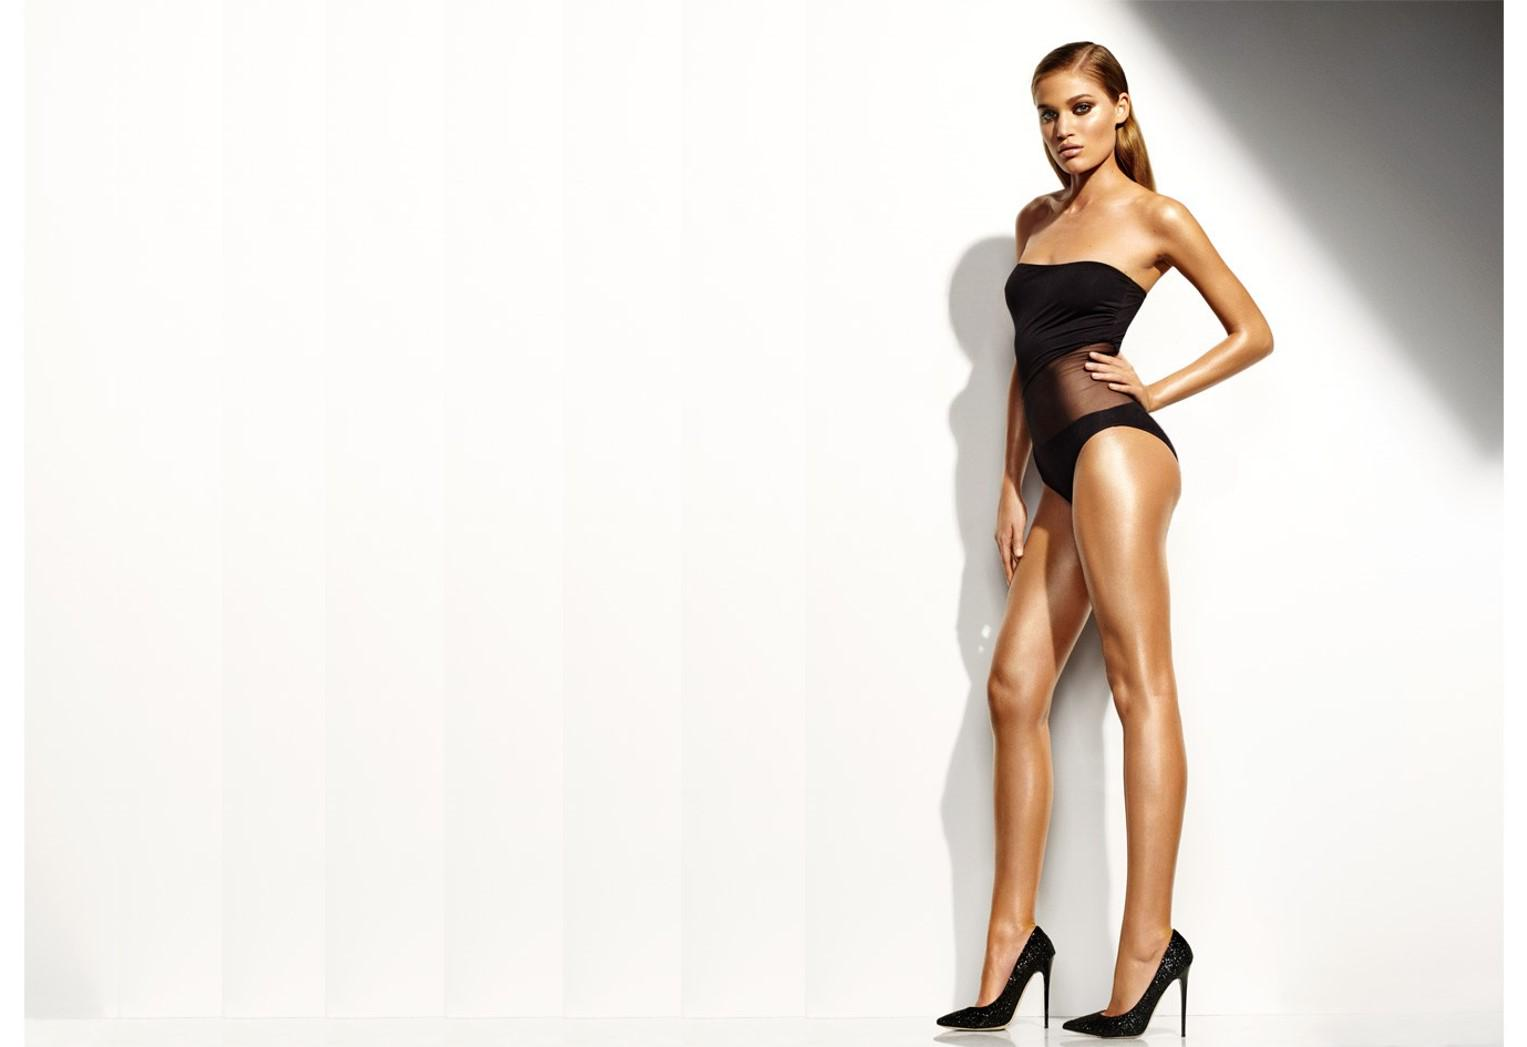 RT @brownthomas: The @CTilburyMakeup Supermodel Body is 'summer confidence in a bottle!' http://t.co/zEwJp1cNfo http://t.co/muYX3Ew8og